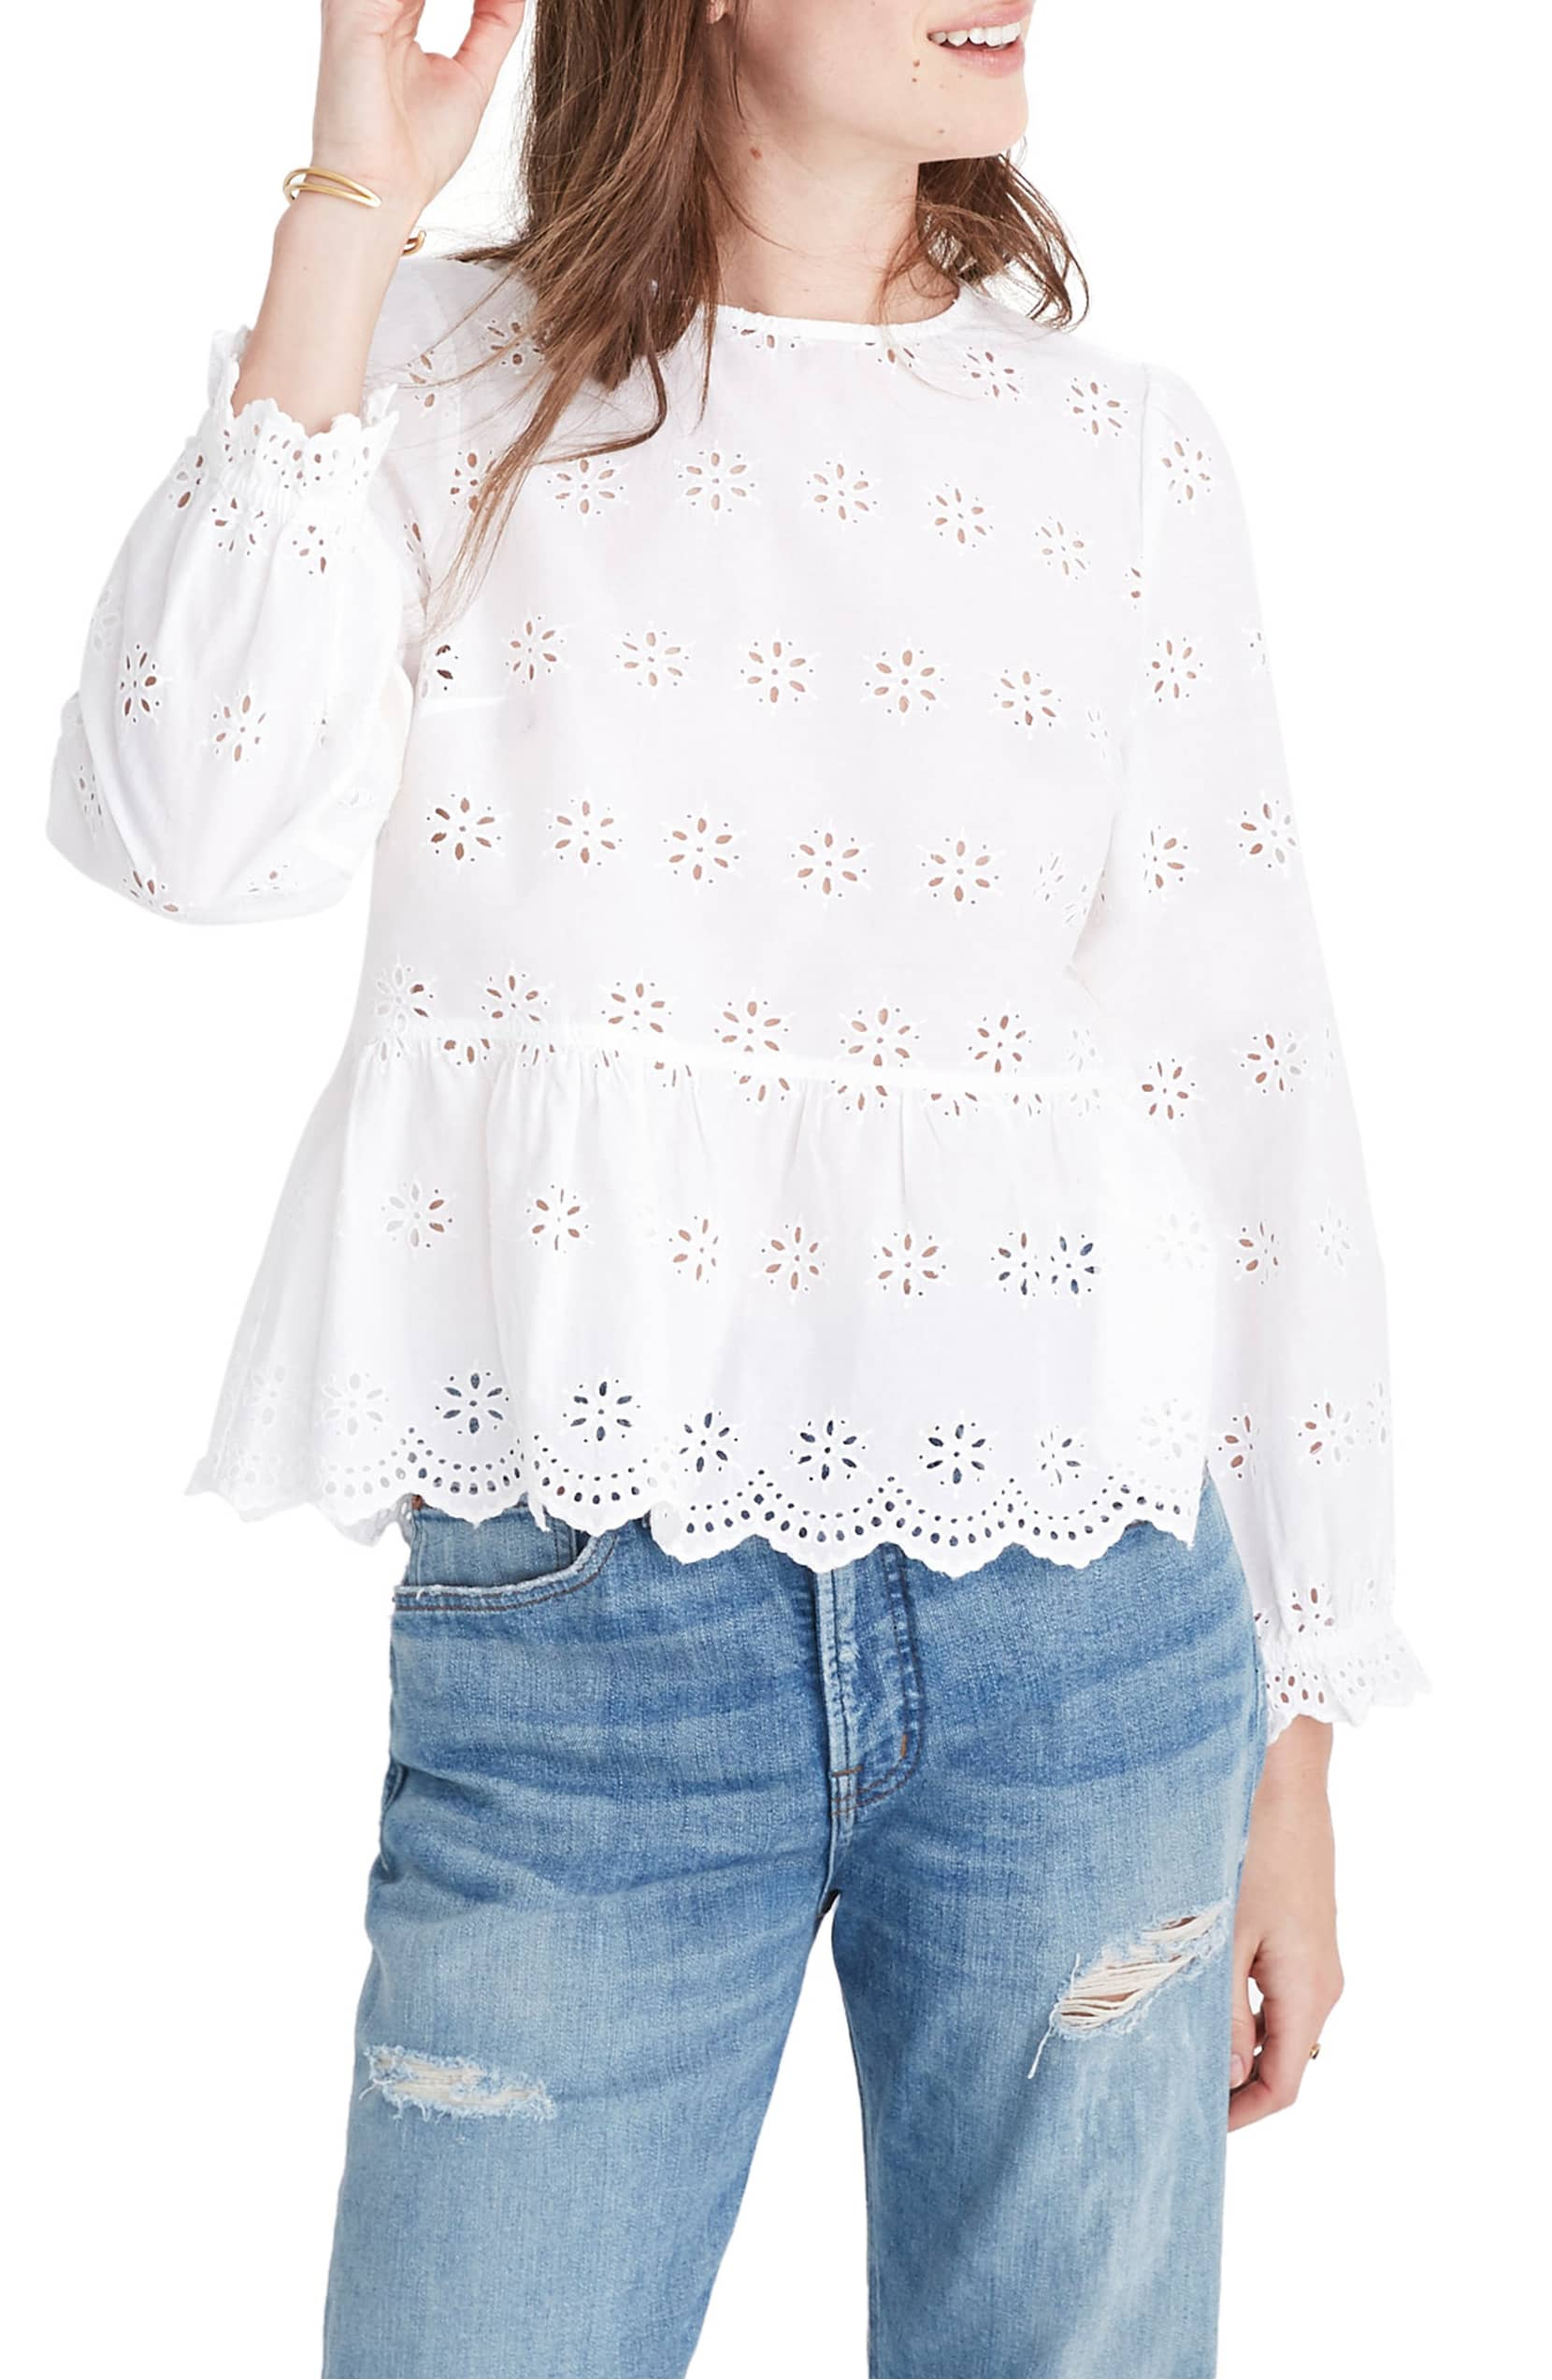 Madewell Eyelet Keyhole Top in White